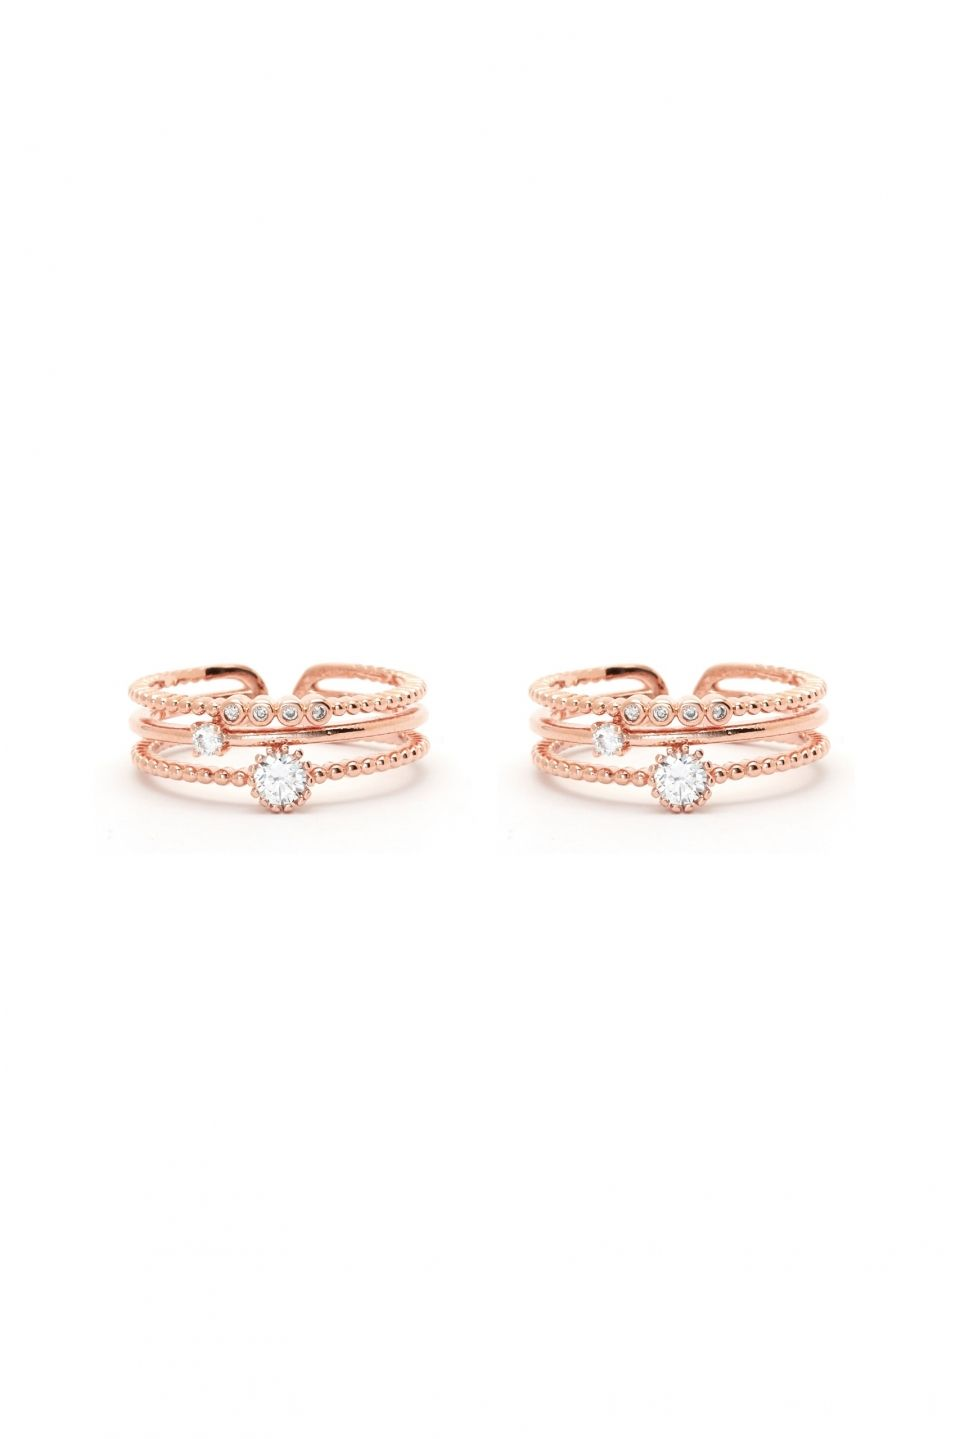 Rue Gembon Jeniece Rose Gold Ring Set Stacks On Stacks Pinterest